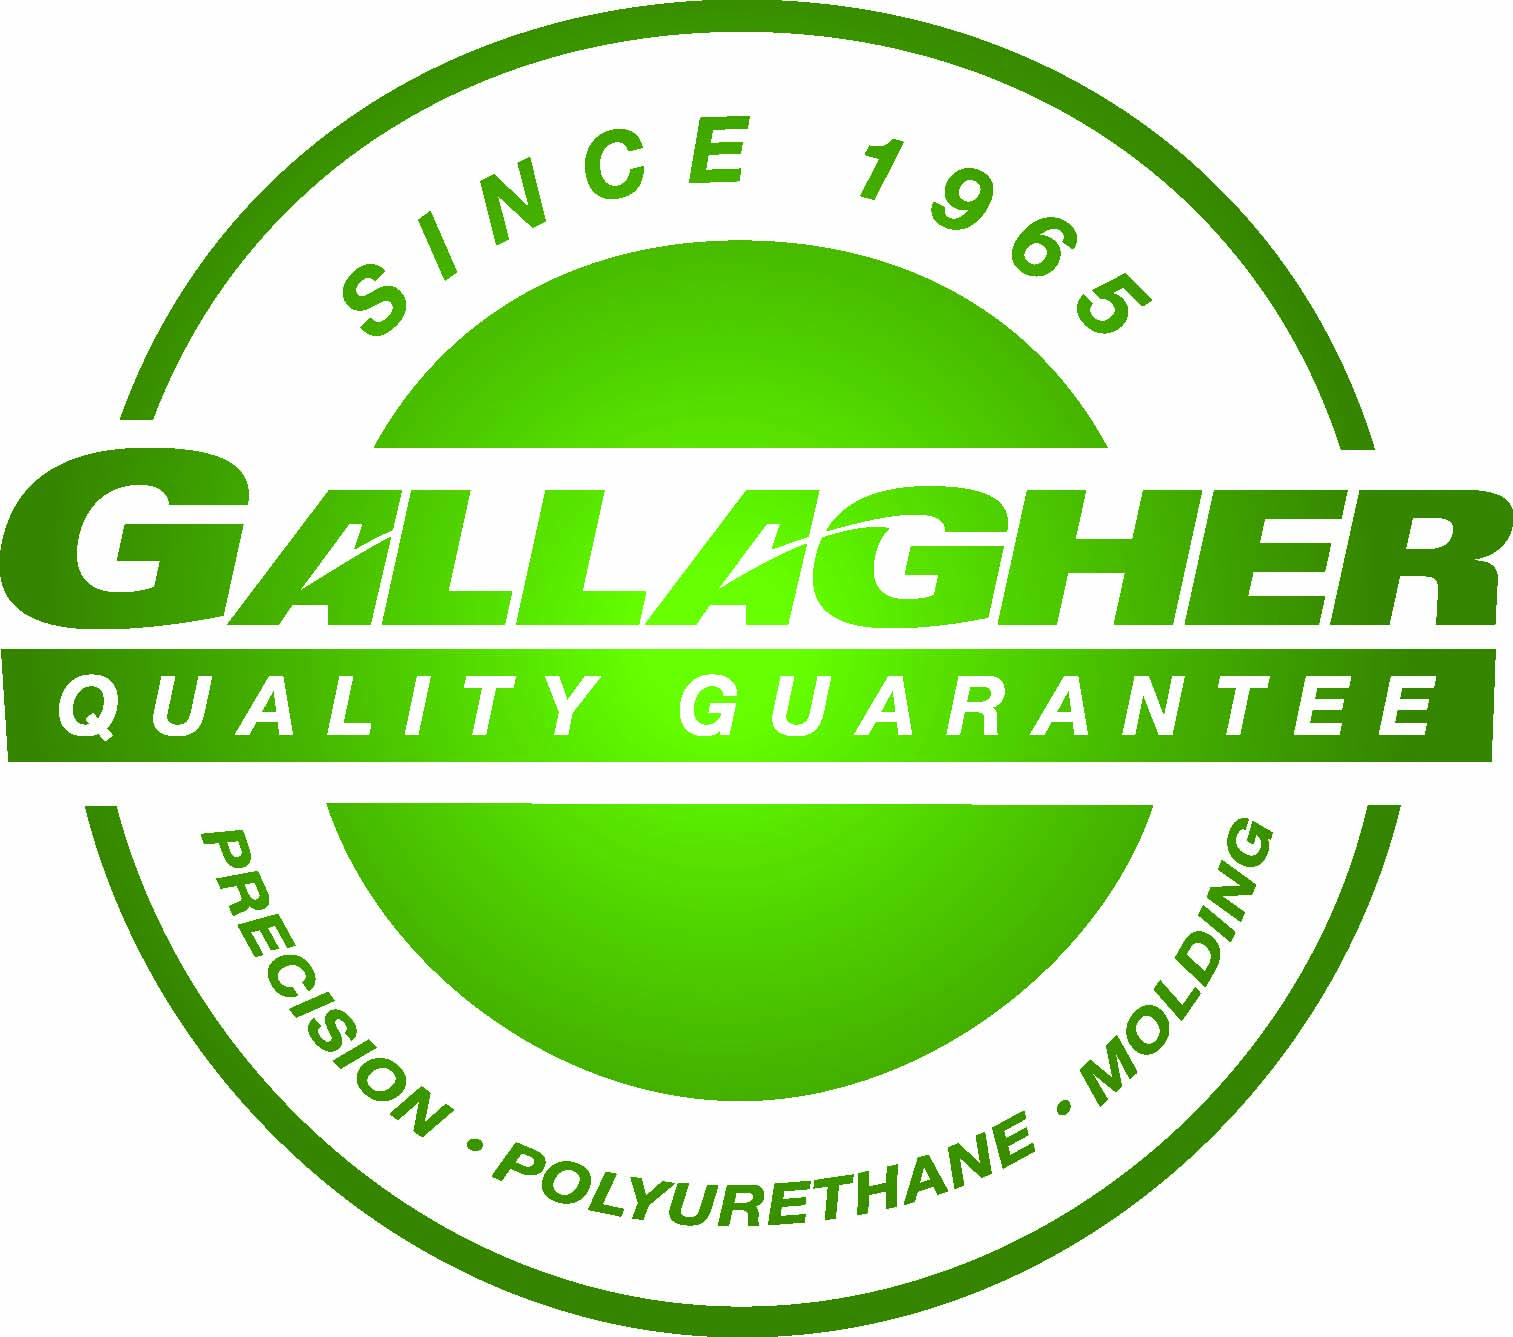 Gallagher Quality Guarantee Cast Polyurethane Manufacturer